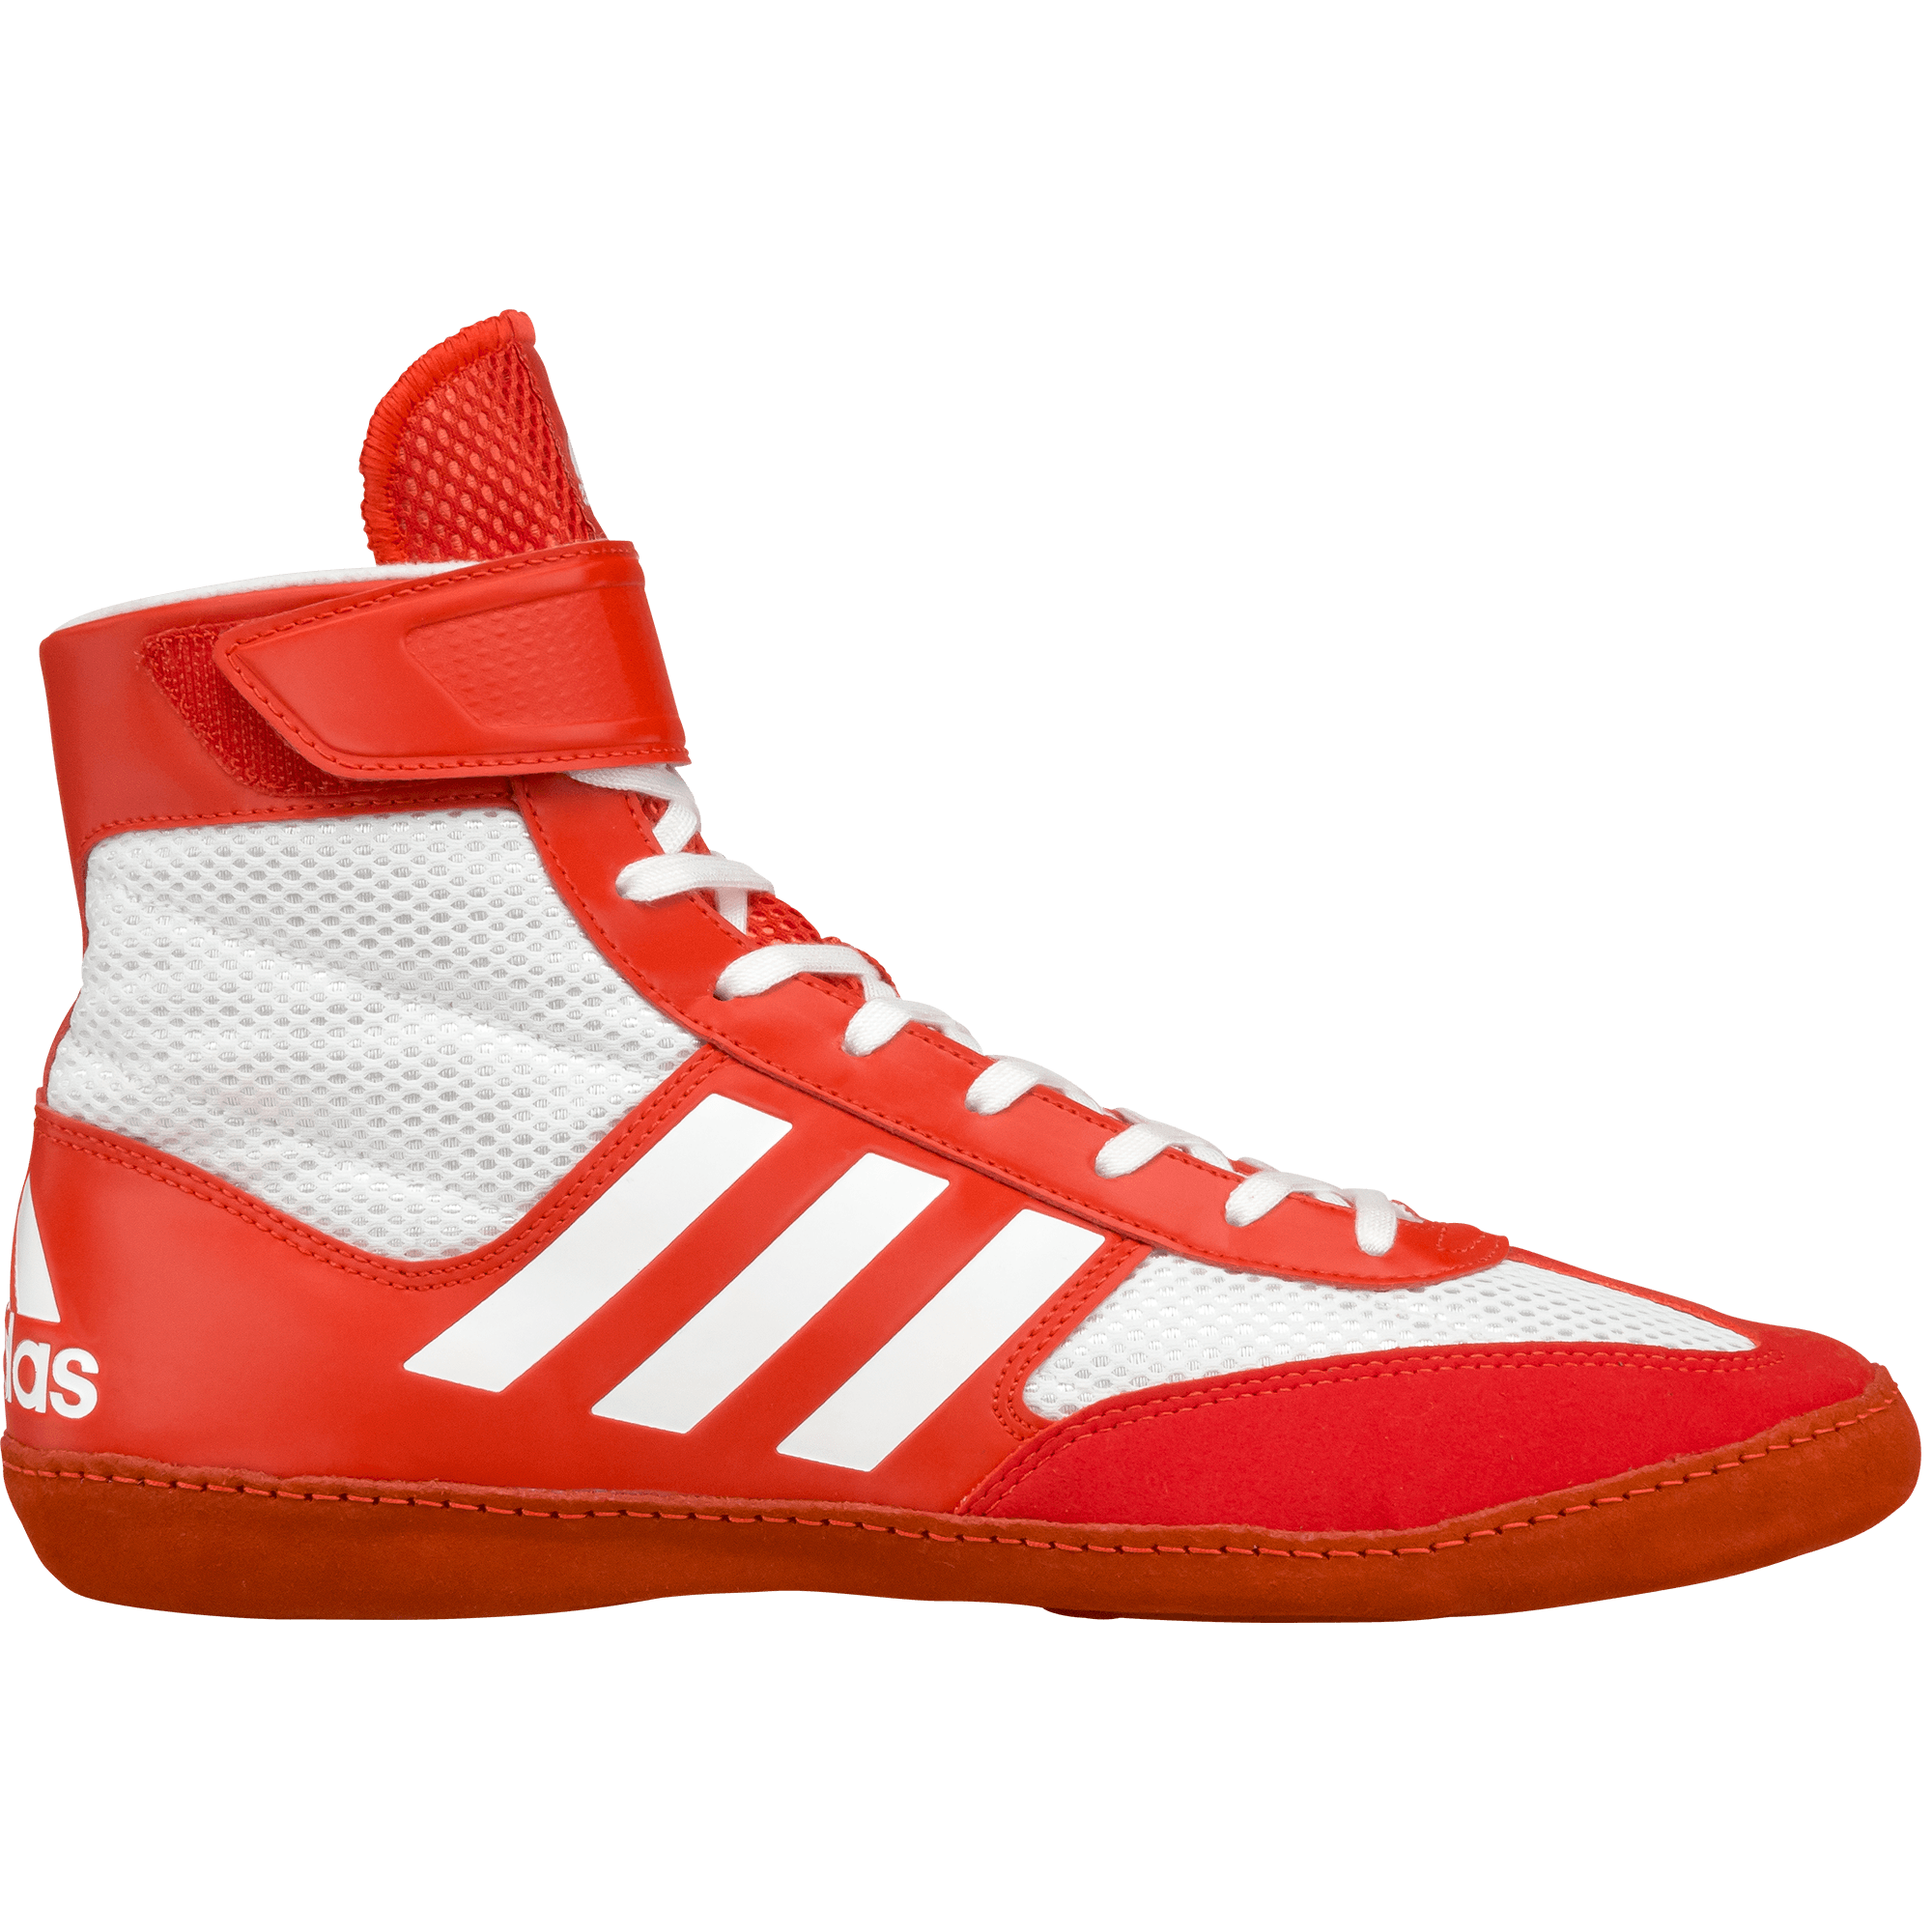 ... Combat Speed 5 Red White Red insideAdidas Combat Speed 5 Red White Red  frontAdidas Combat Speed 5 Red White Red backAdidas Combat Speed 5 Red  White Red ... c95884e70